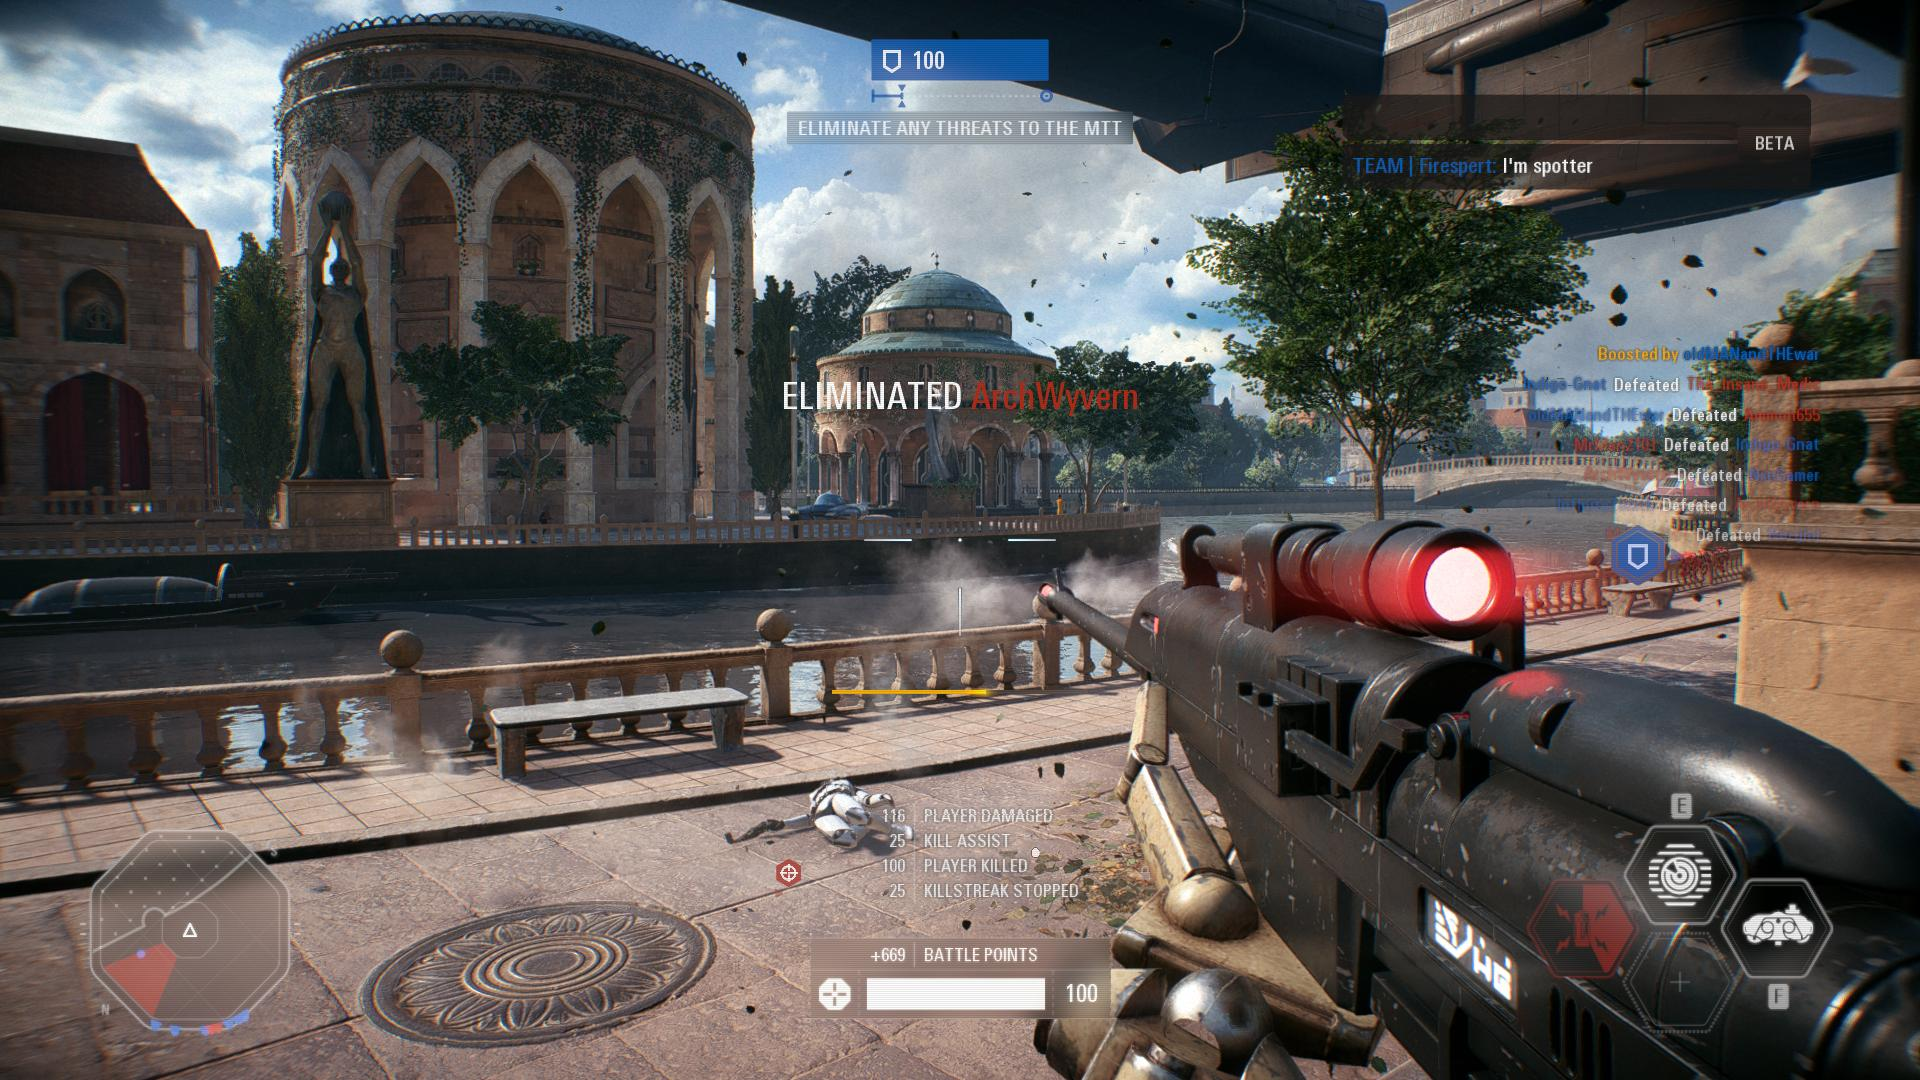 My Immediate Impressions Of Battlefront II Are That It Runs Surprisingly Smooth I Did Not Configure Game And Used The Automatic Settings